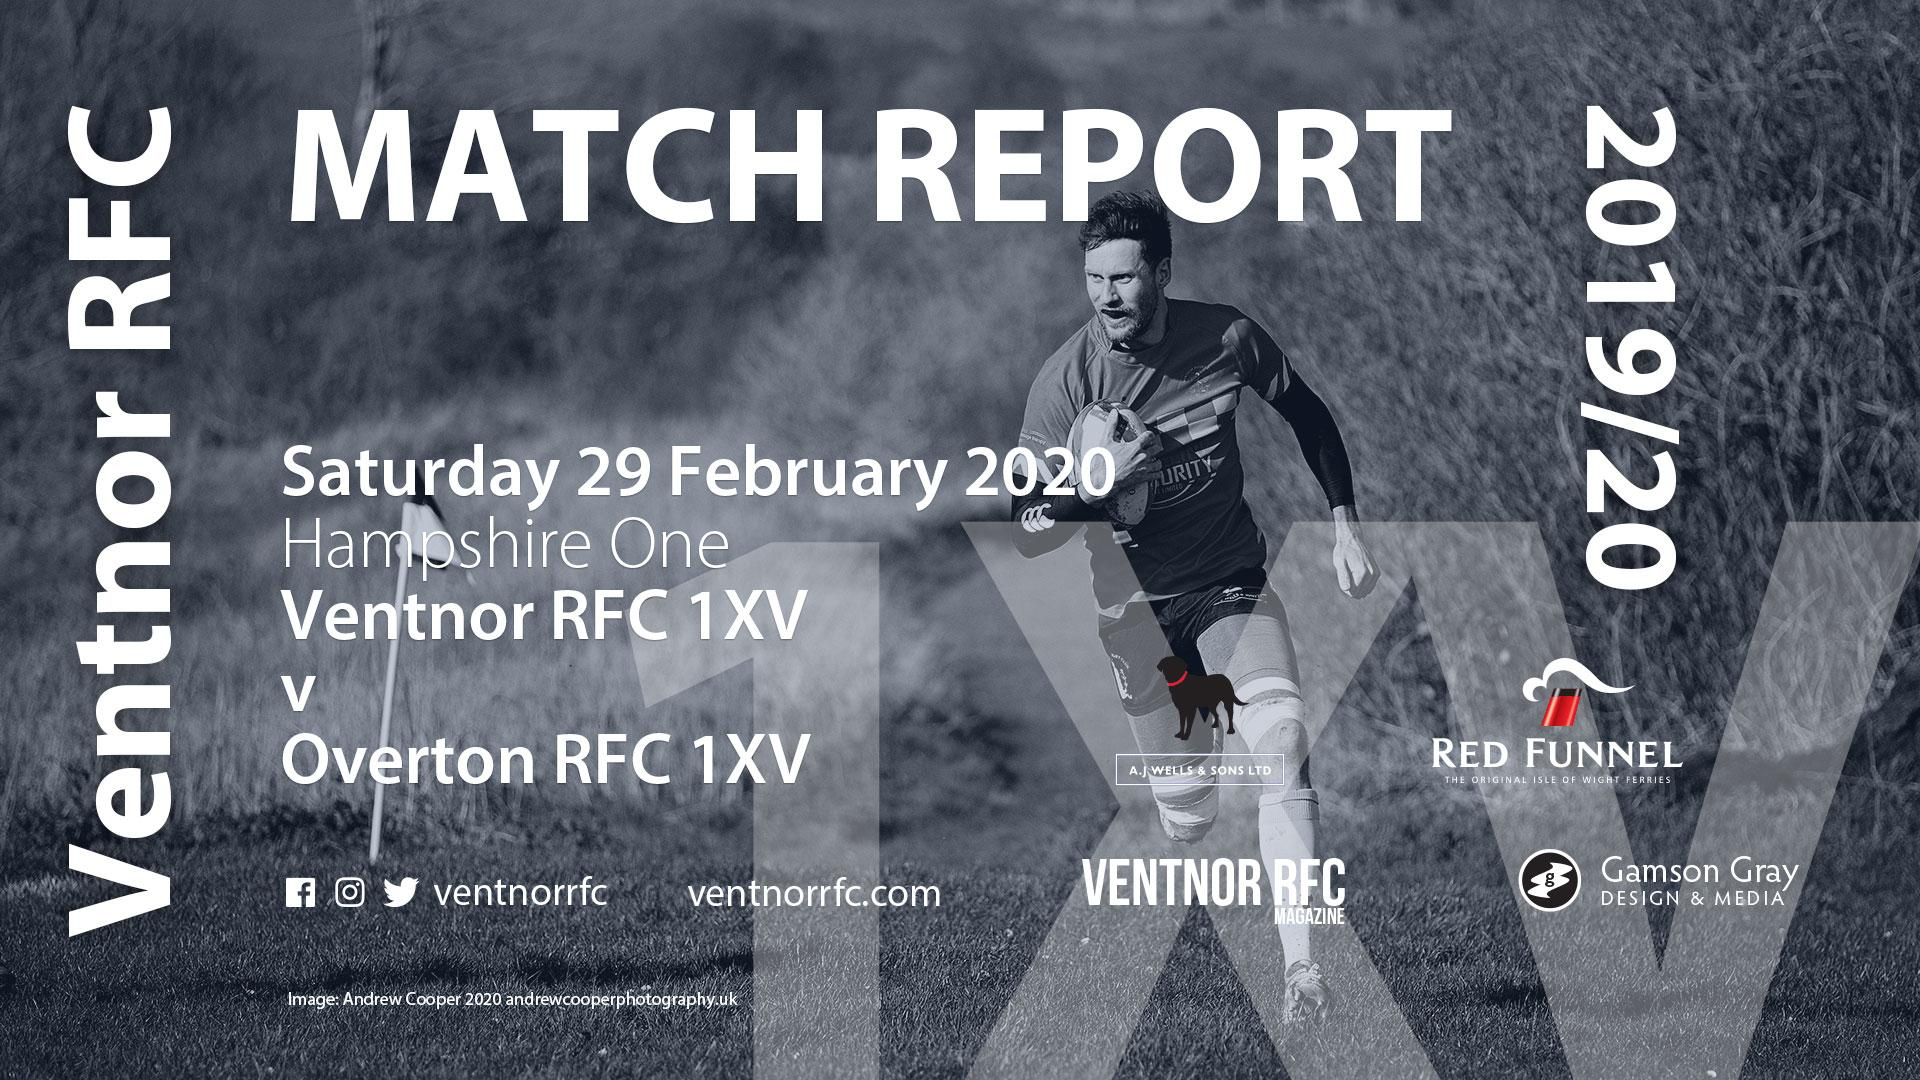 Ventnor RFC 1XV 12-18 Overton RFC 1XV, 29 February 2020